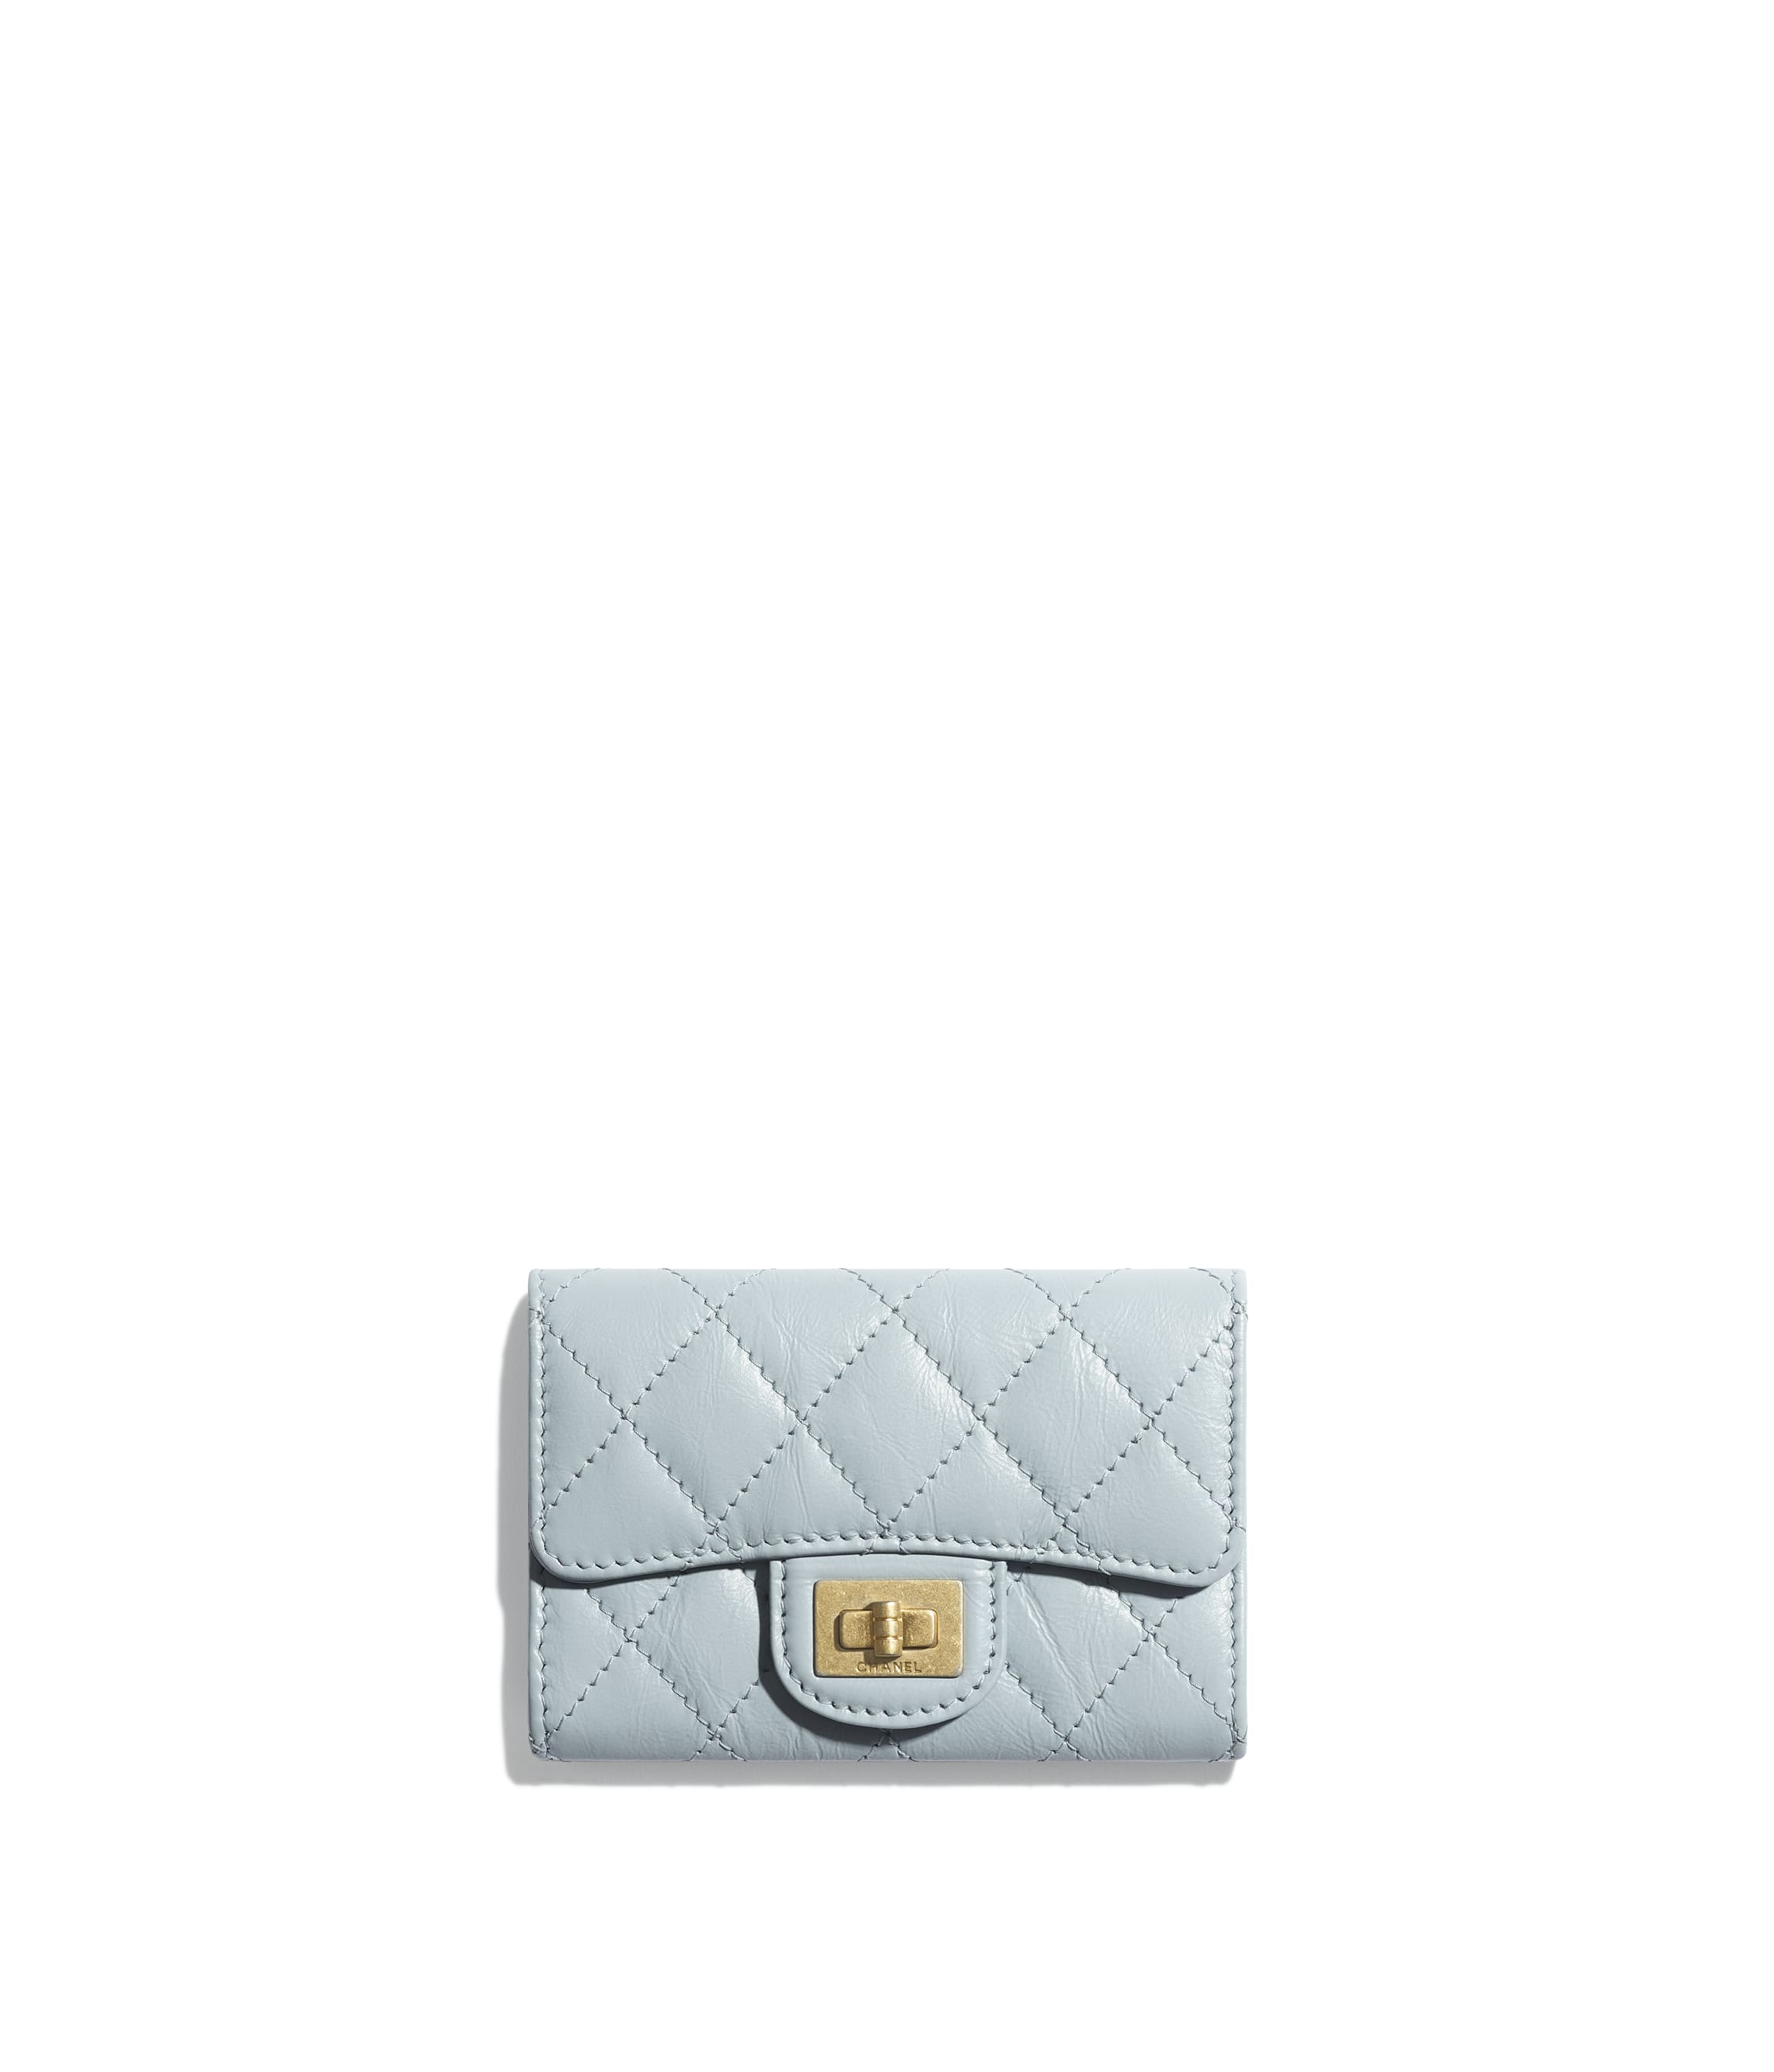 4a7869a1456ebf 2.55 - Small Leather Goods - CHANEL